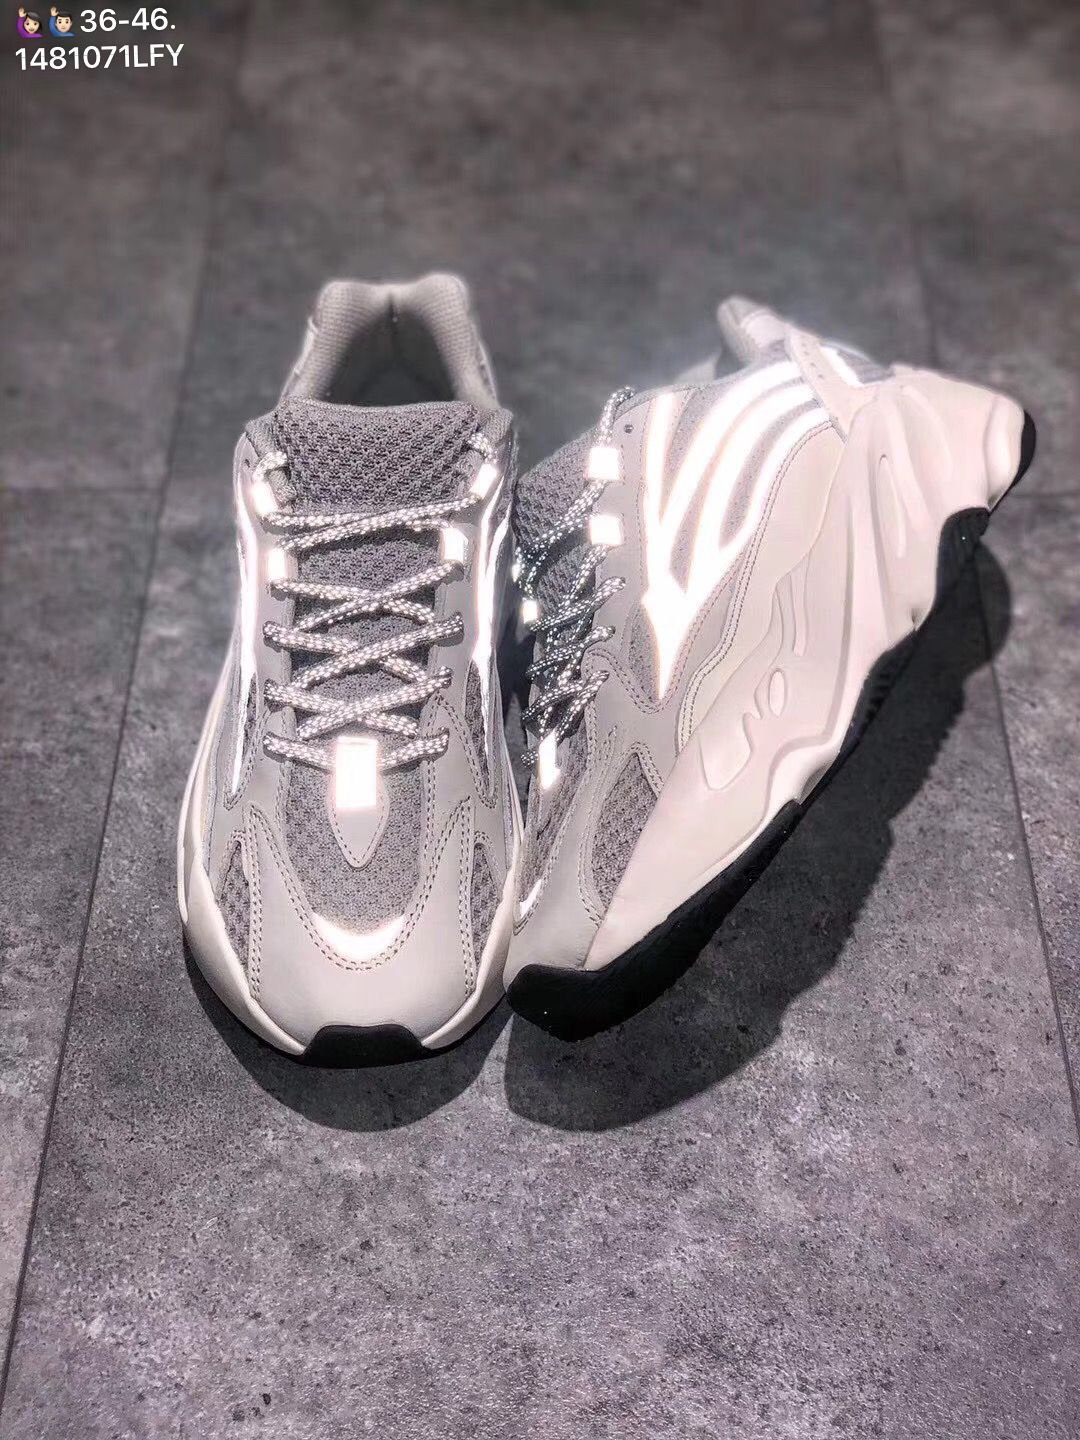 576ae71e Adidas yeezy boost 700 V2 static reflective sneakers woman man couple shoes